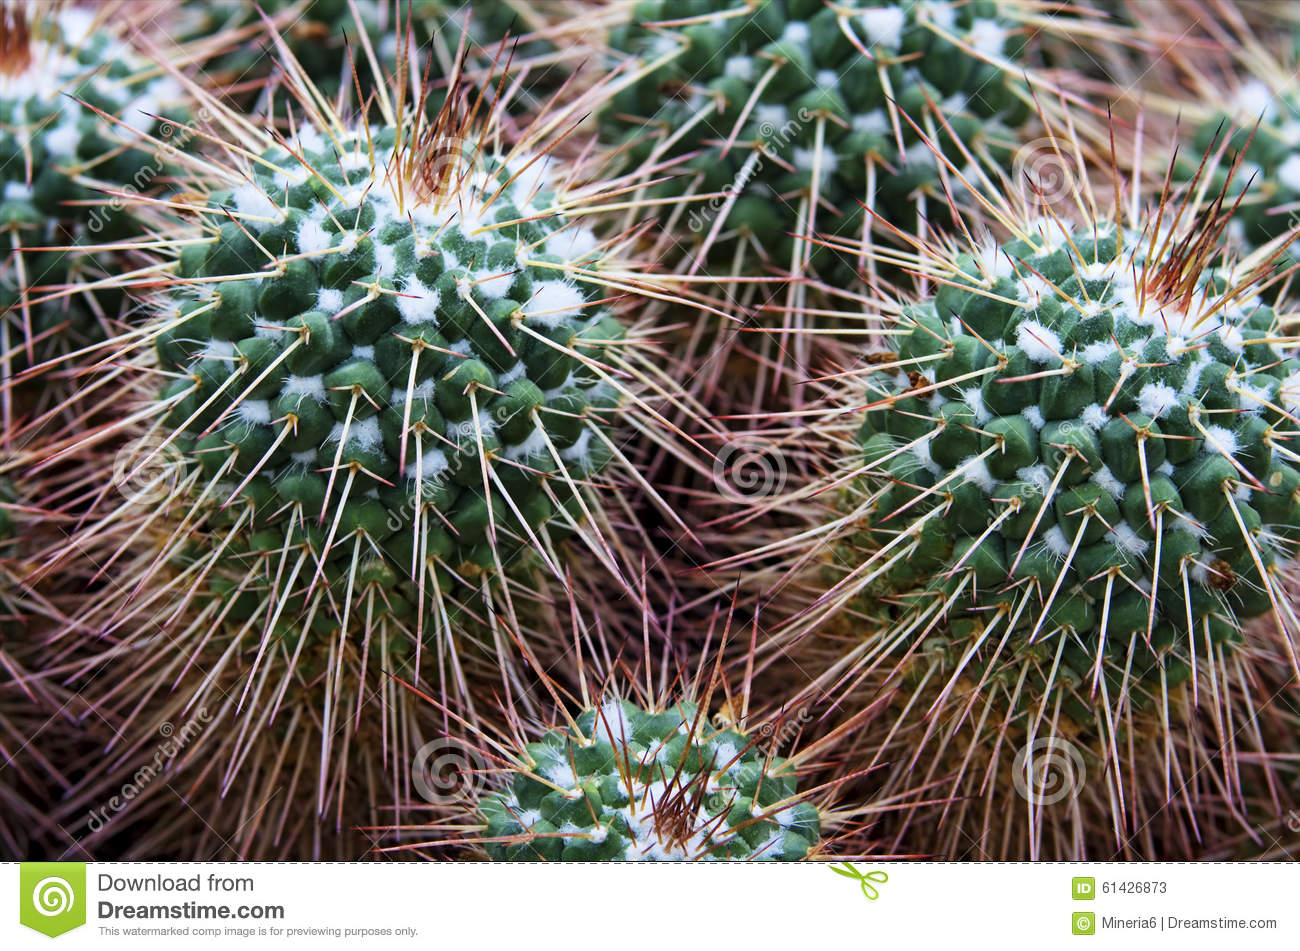 Closeup of a cactus plant stock photo image 61426873 for What time does the botanical gardens close